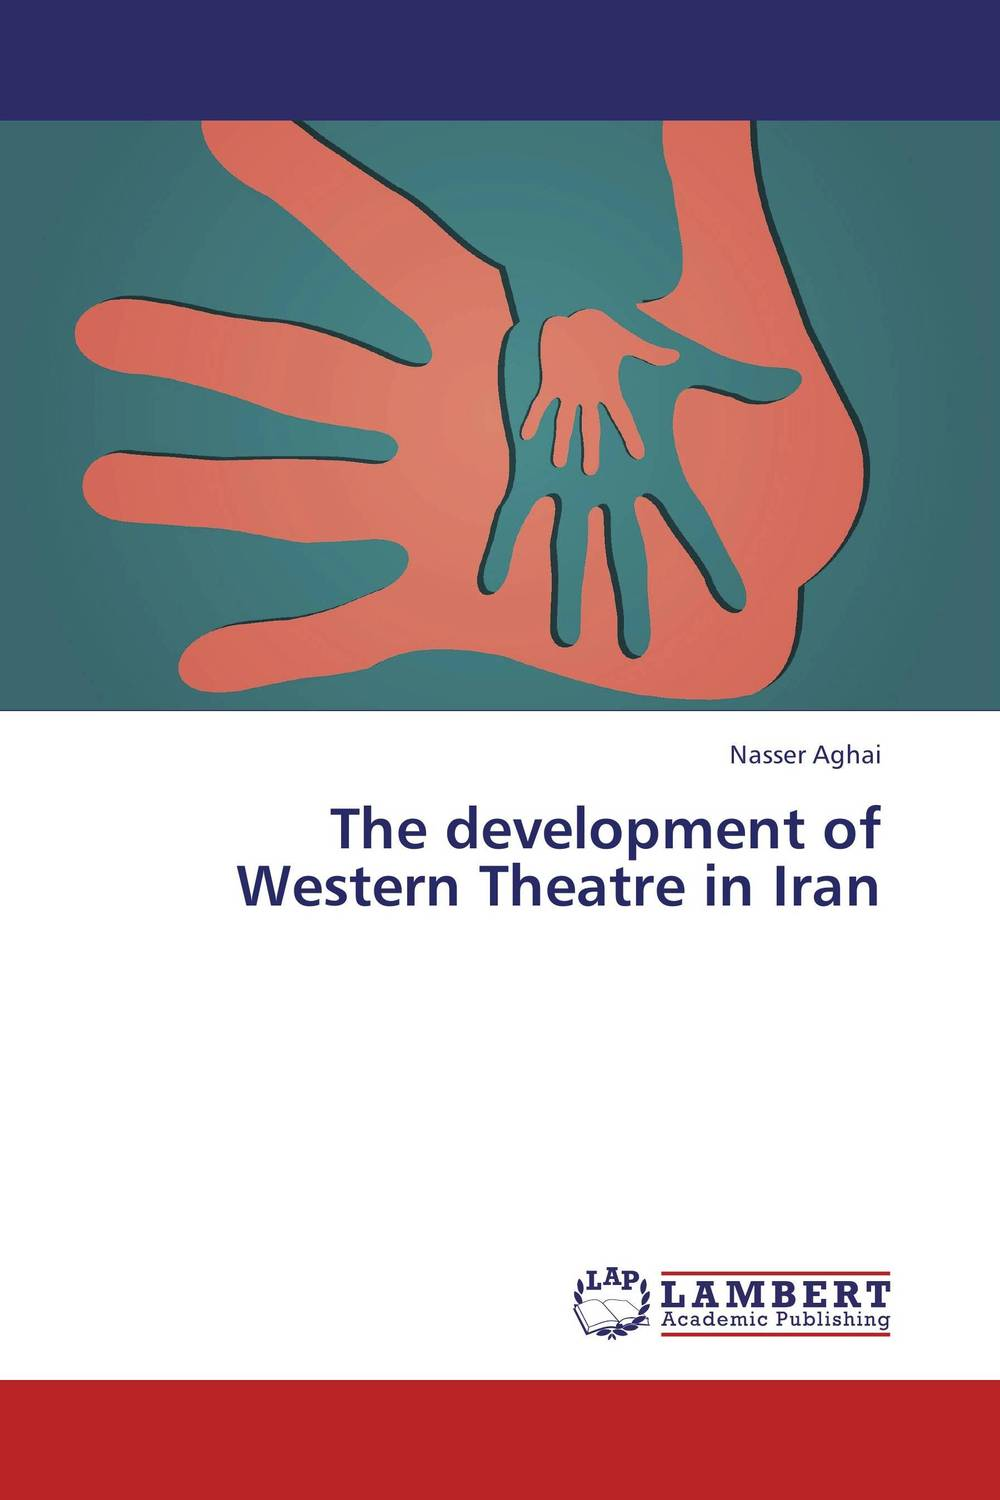 Фото The development of Western Theatre in Iran persian art